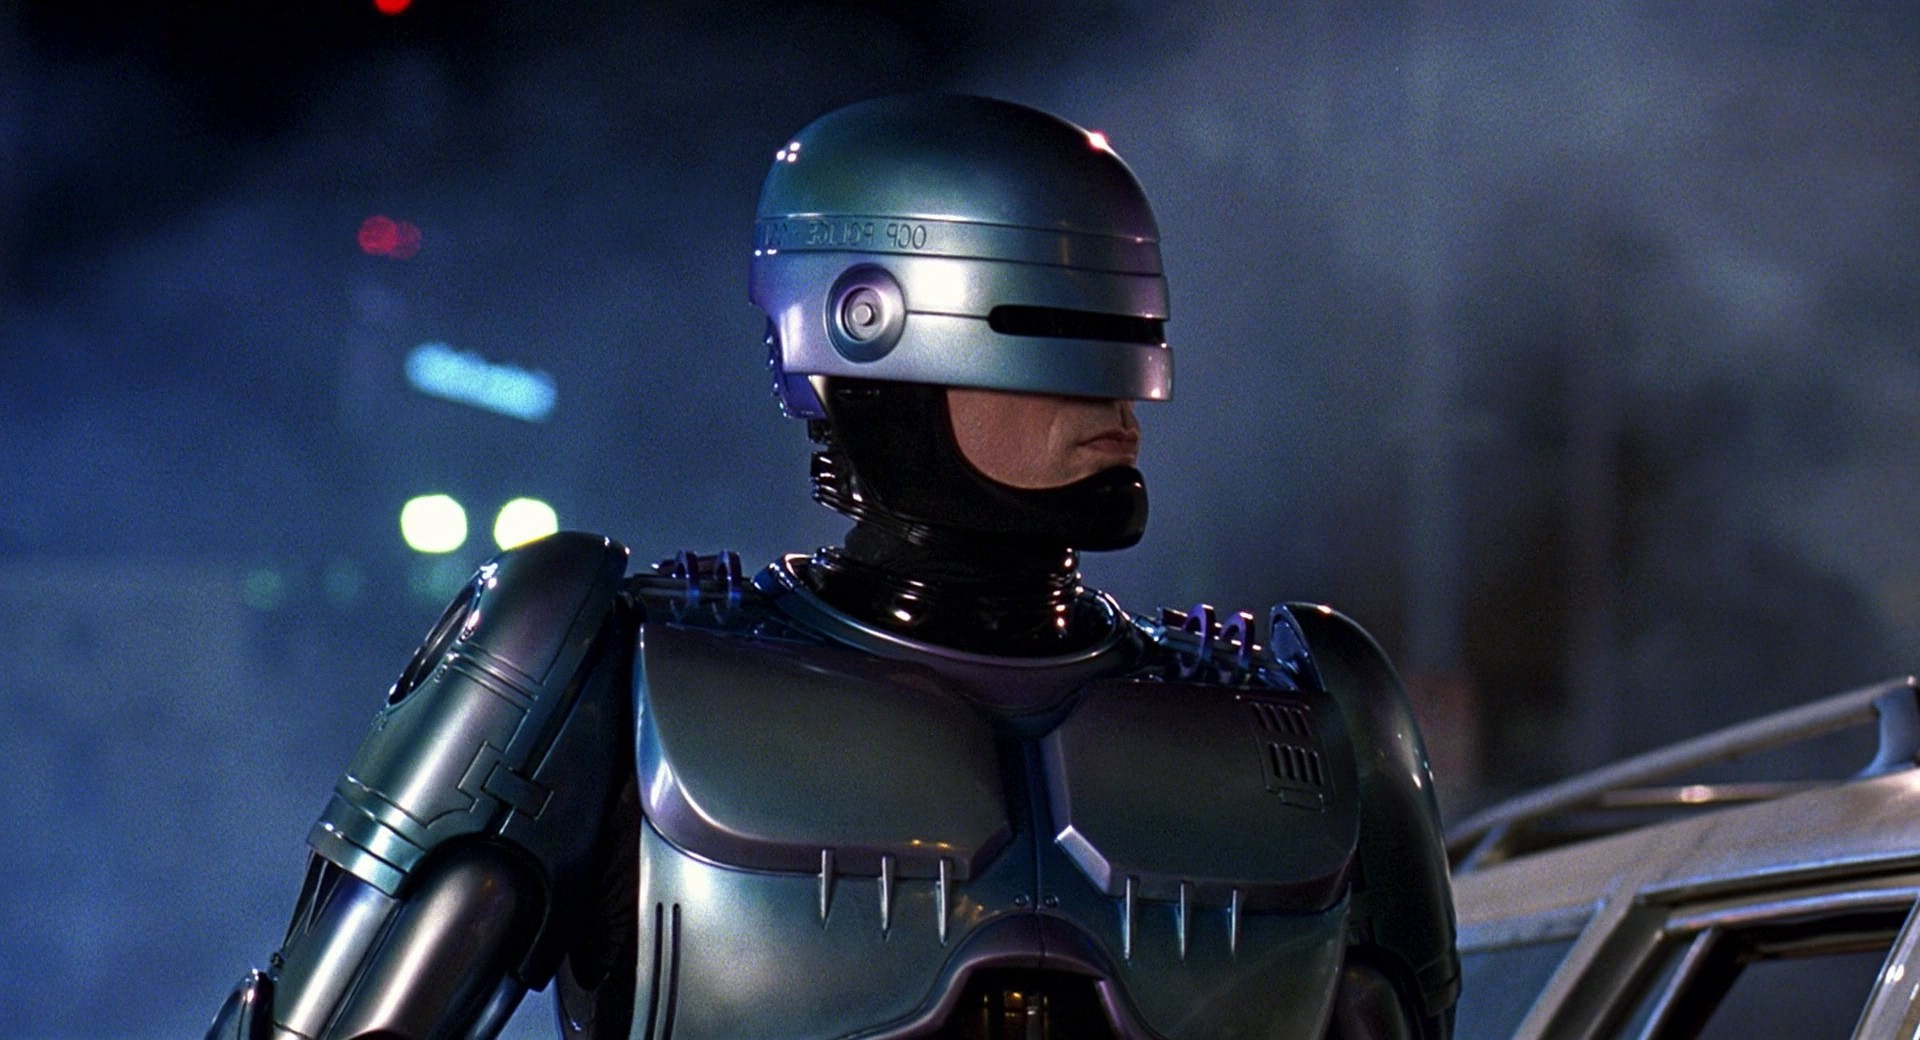 New Girl Hd Wallpaper Download Robocop Movies Wallpapers Hd Desktop And Mobile Backgrounds